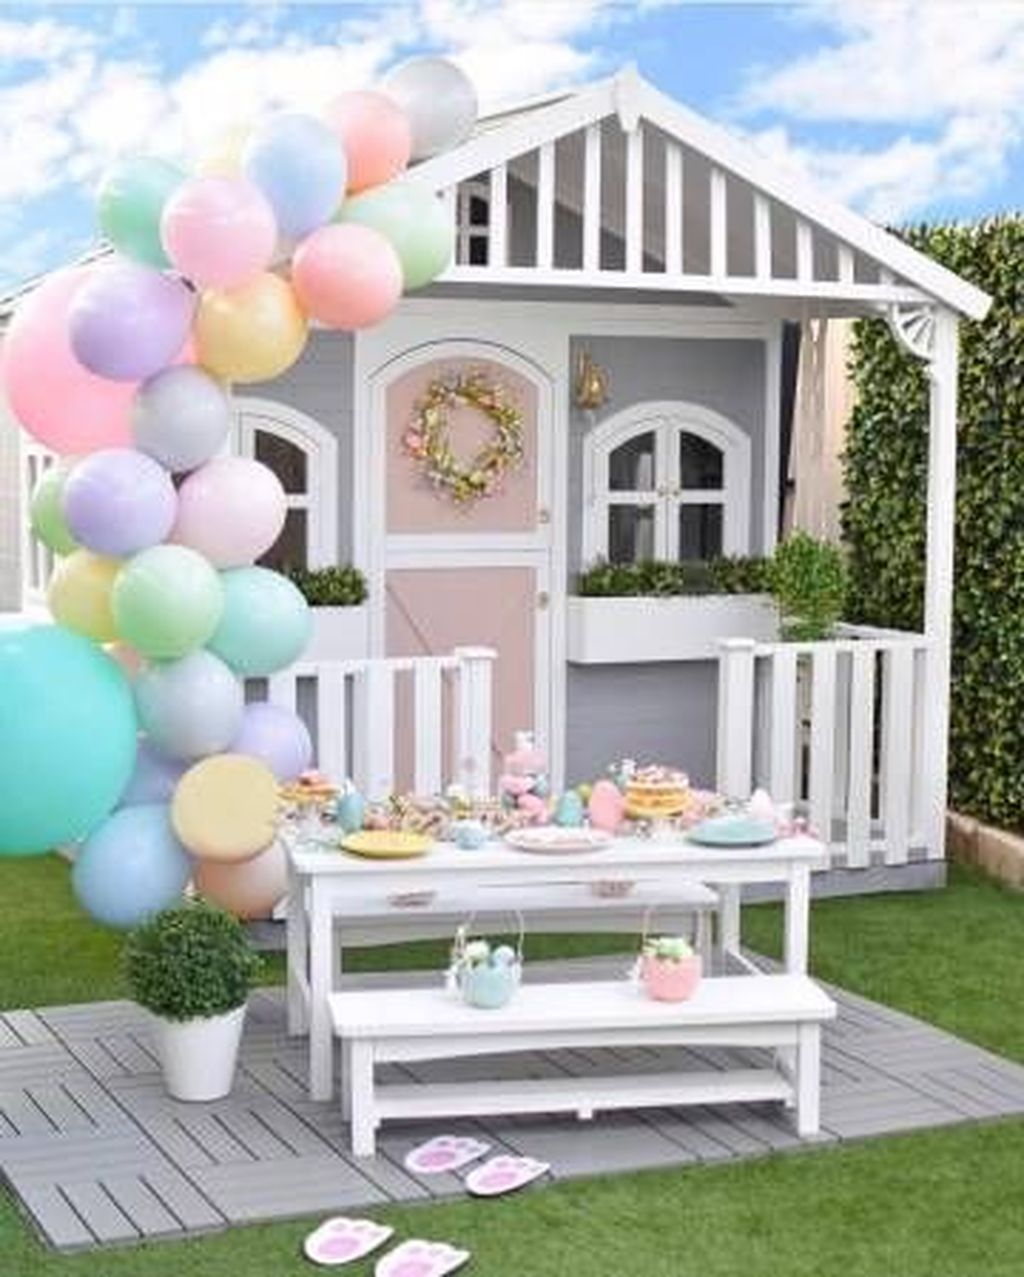 Attractive Outdoor Kids Playhouses Design Ideas To Try Right Now 16